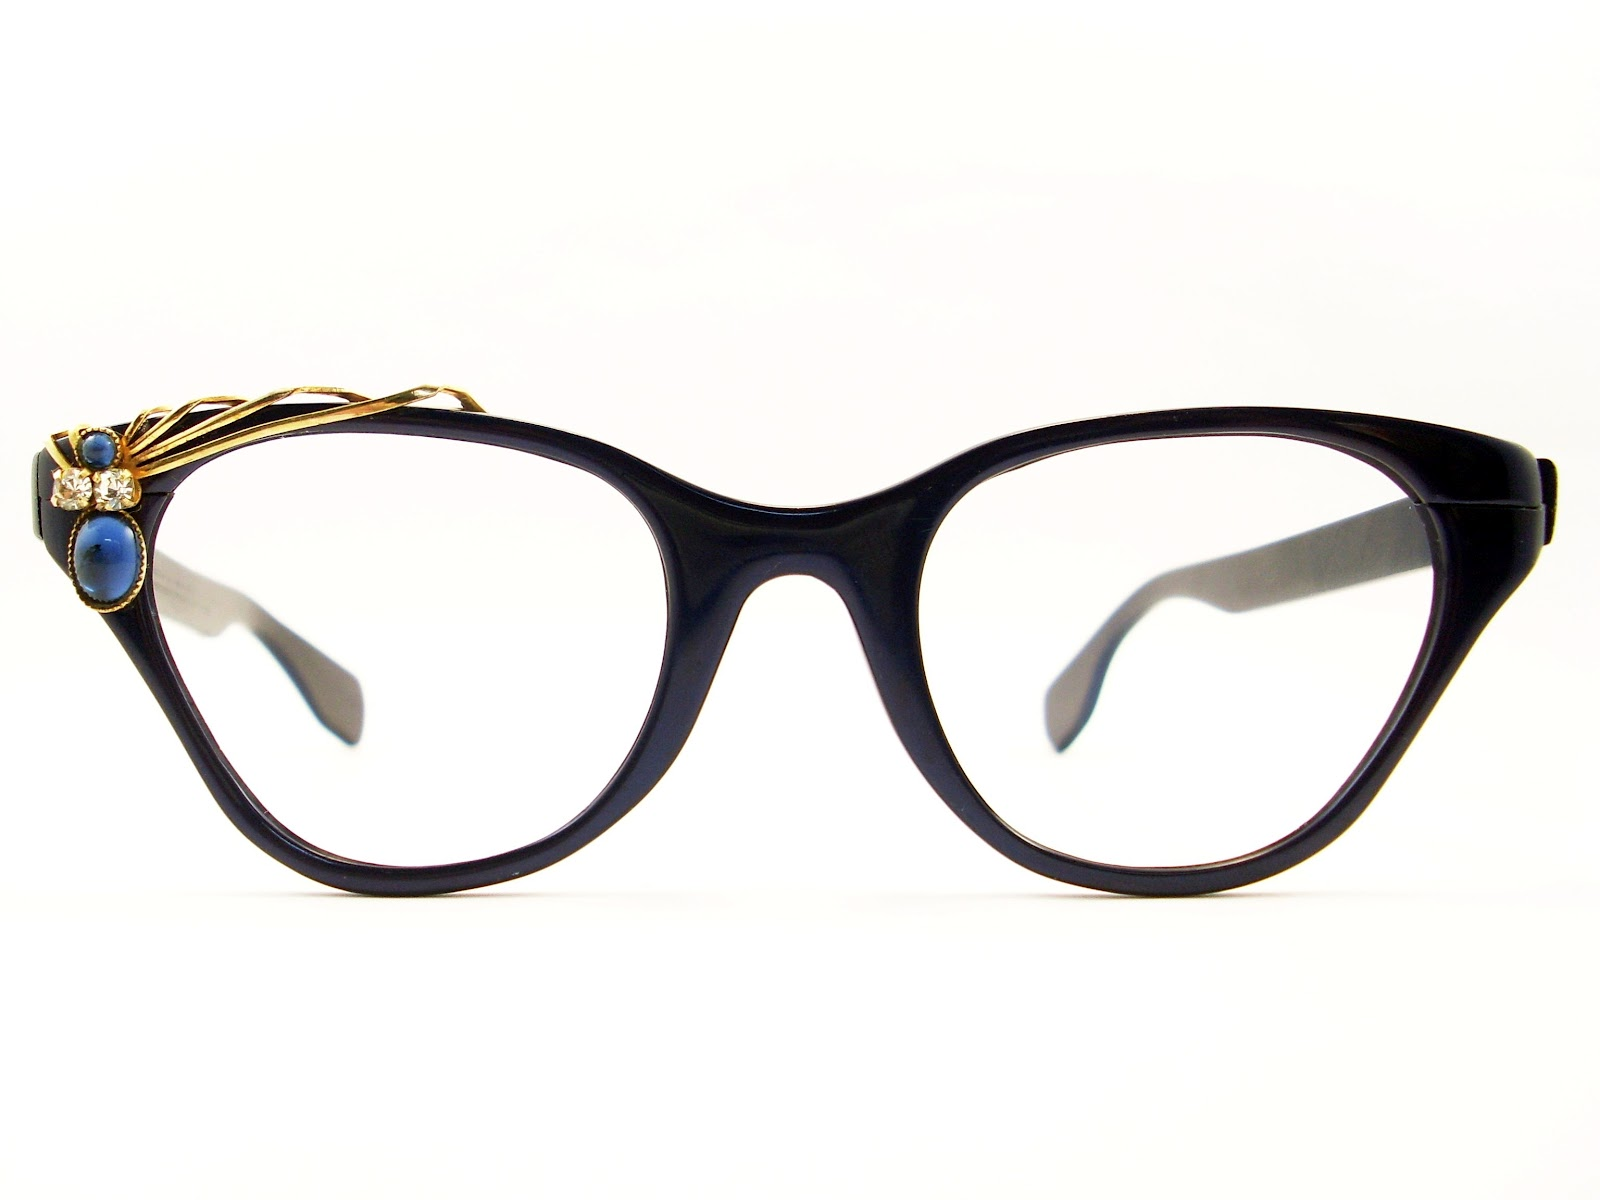 Eyeglass Frames On My Photo : Vintage Eyeglasses Frames Eyewear Sunglasses 50S: VINTAGE ...